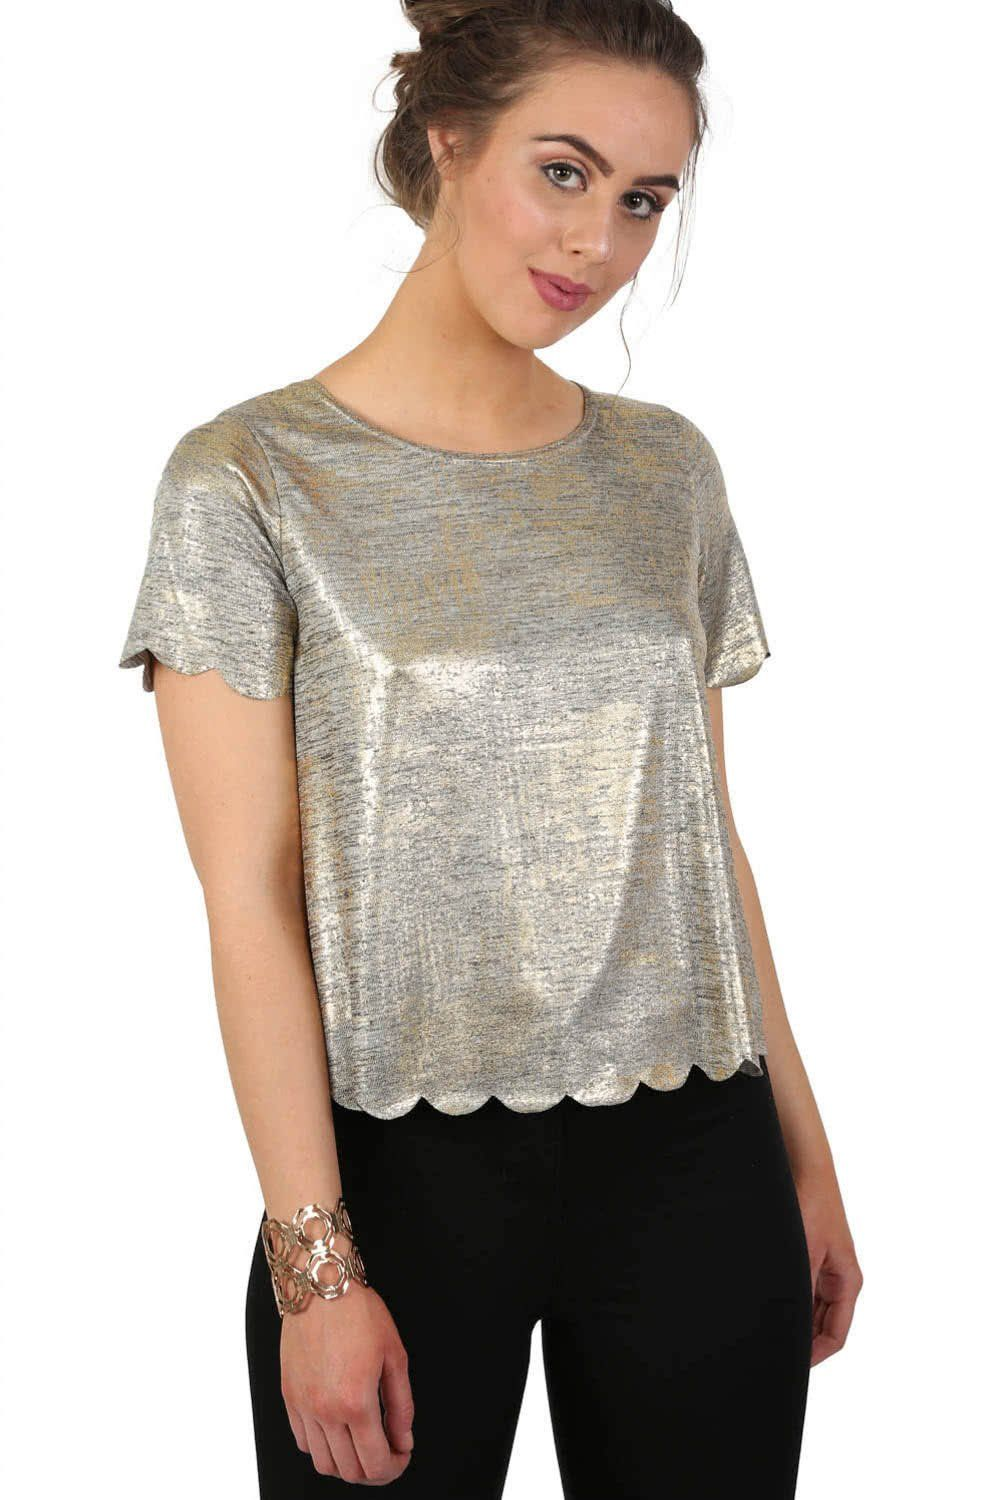 Tops - Short Sleeve Metallic Scallop Edge Top In Gold